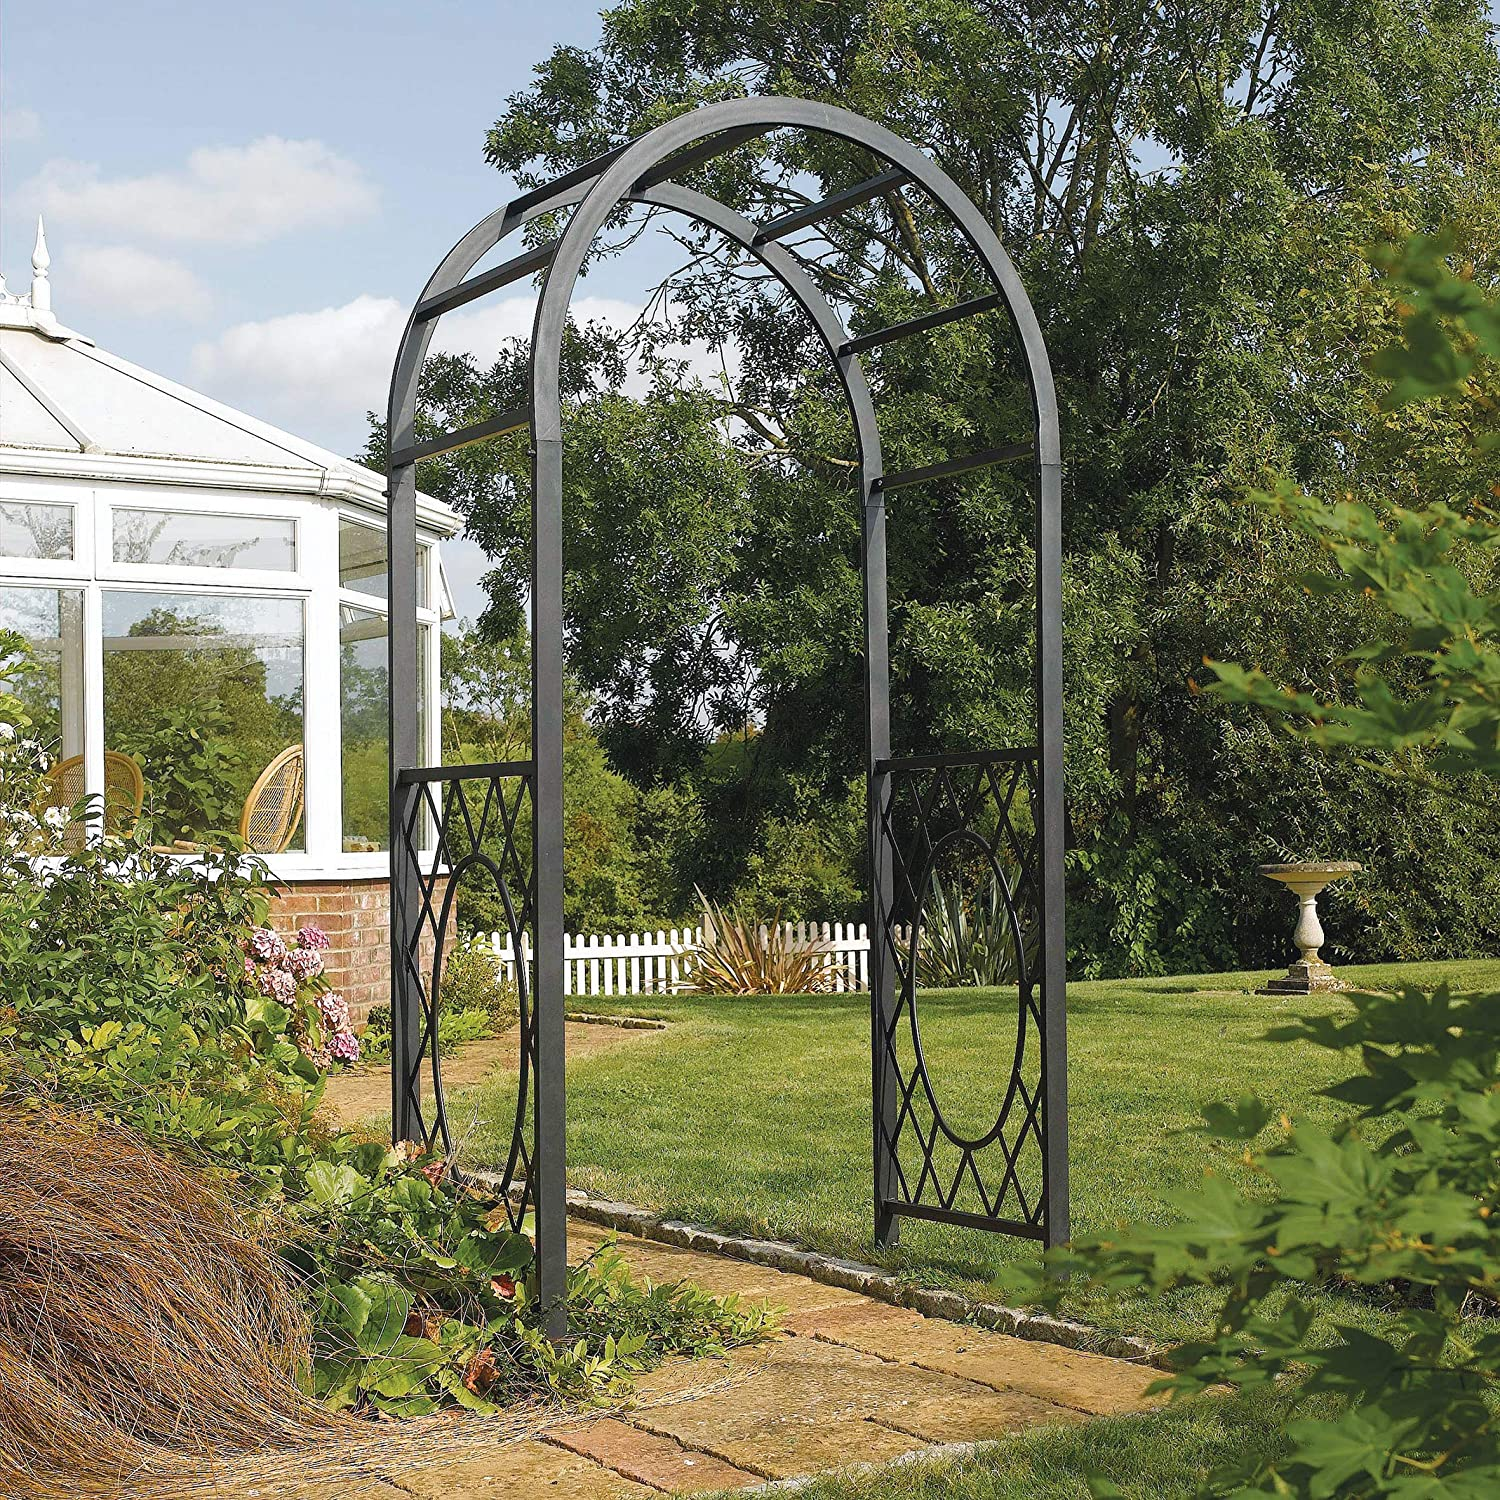 Bosmere ARCHWRRT Rowlinson Wrenbury Round Top Steel Arch with Powder-Coated Frame, Gunmetal Grey